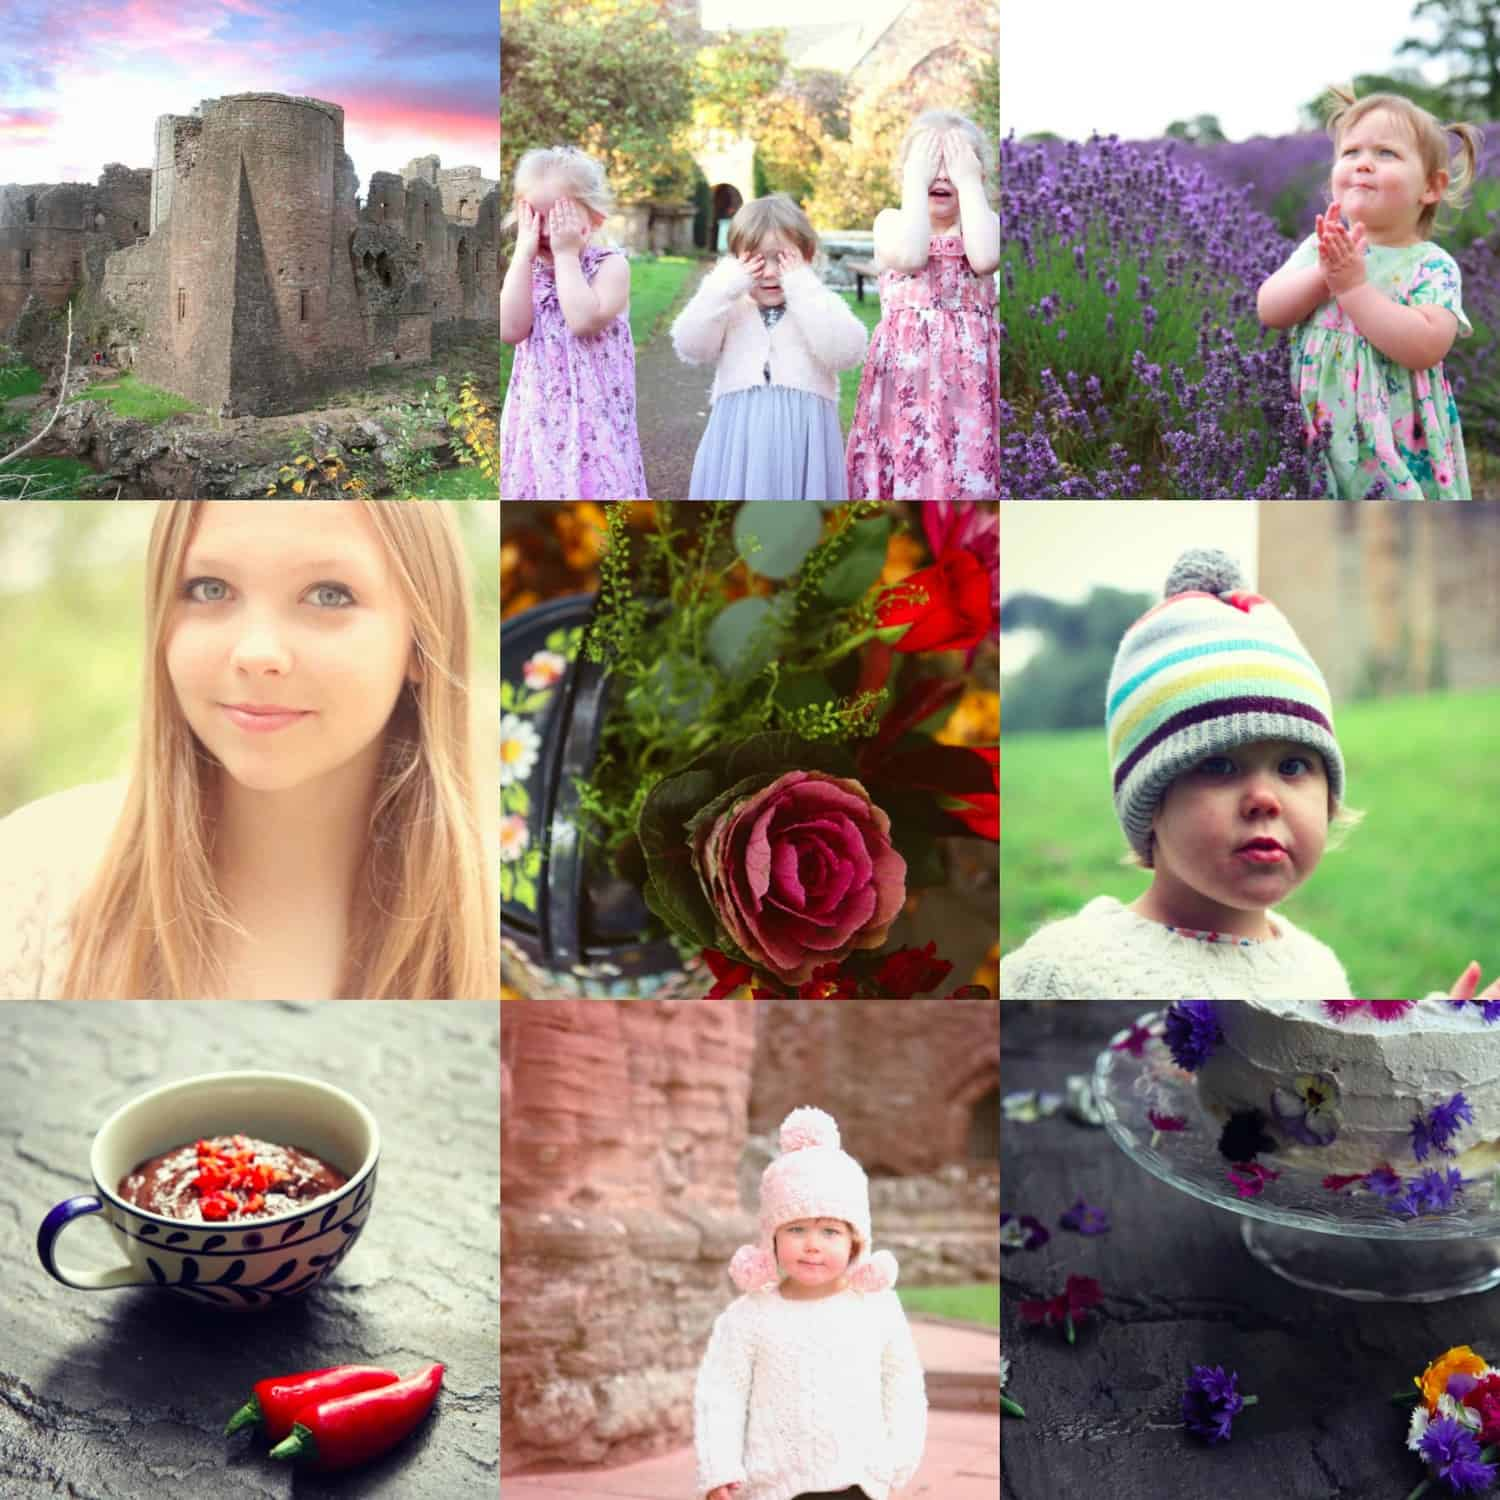 A collection of shots from a styled Instagram taken with a canon 7D